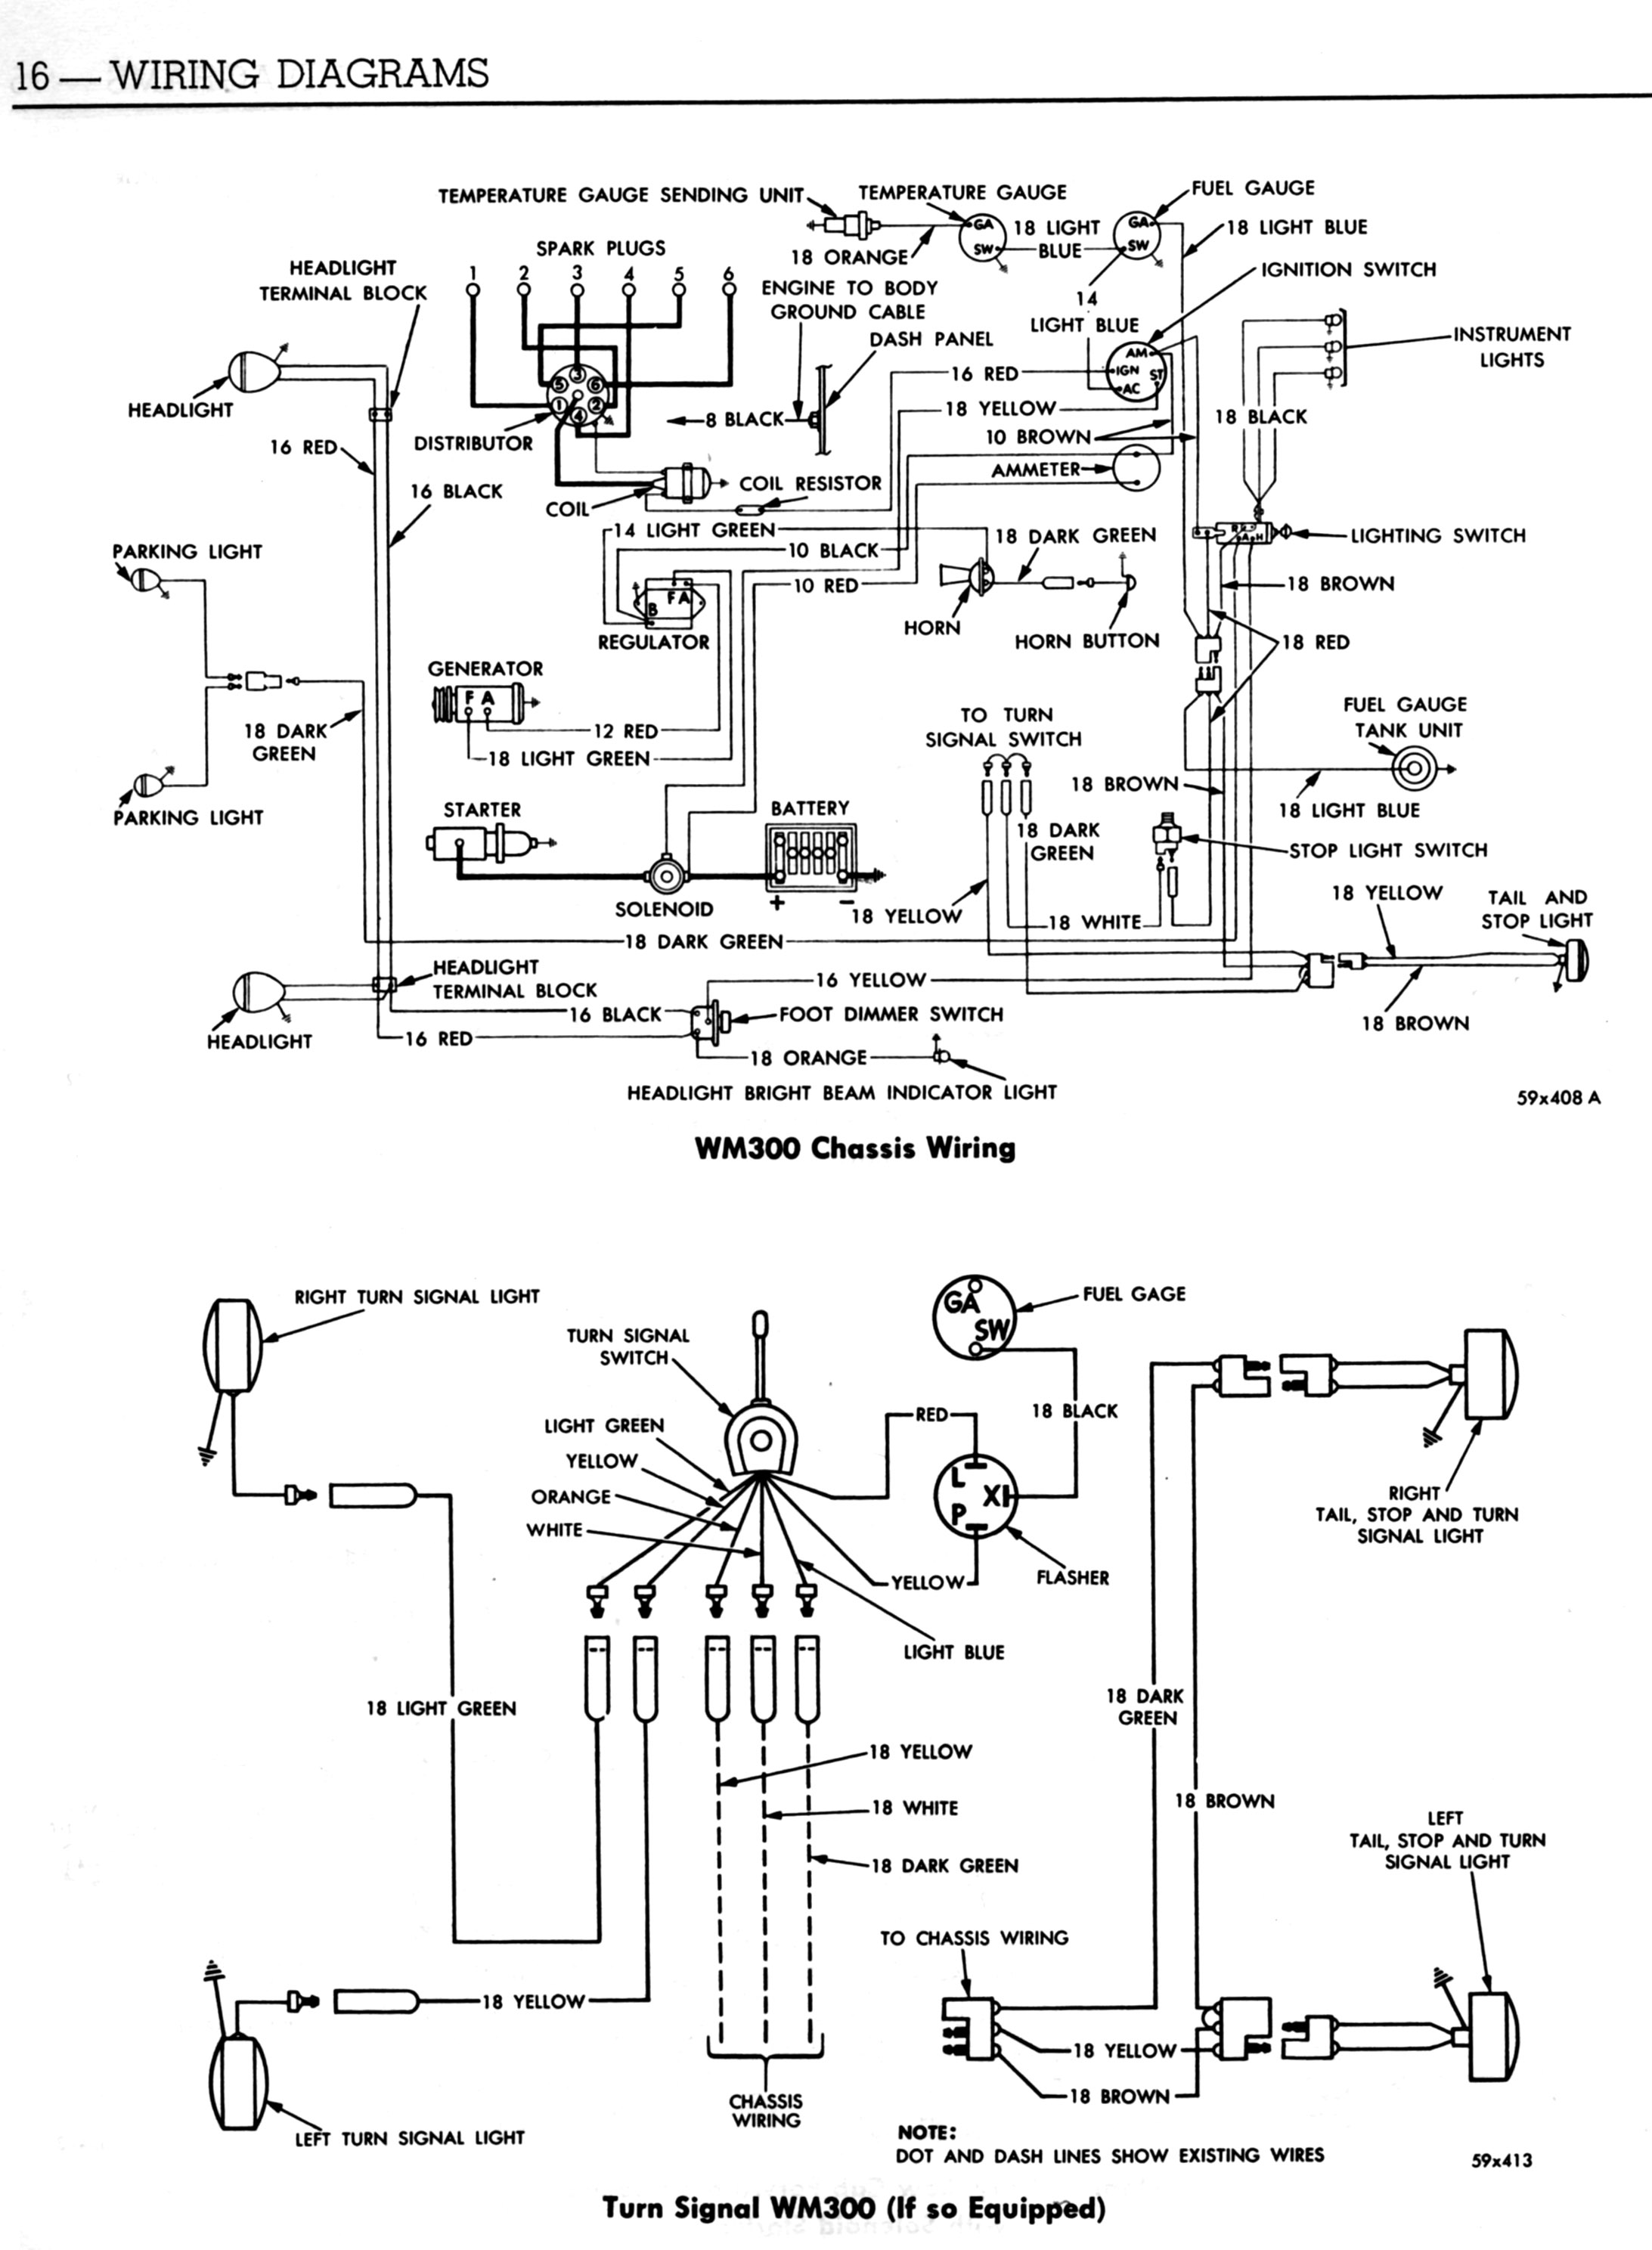 Wm300 Wiring Diagram